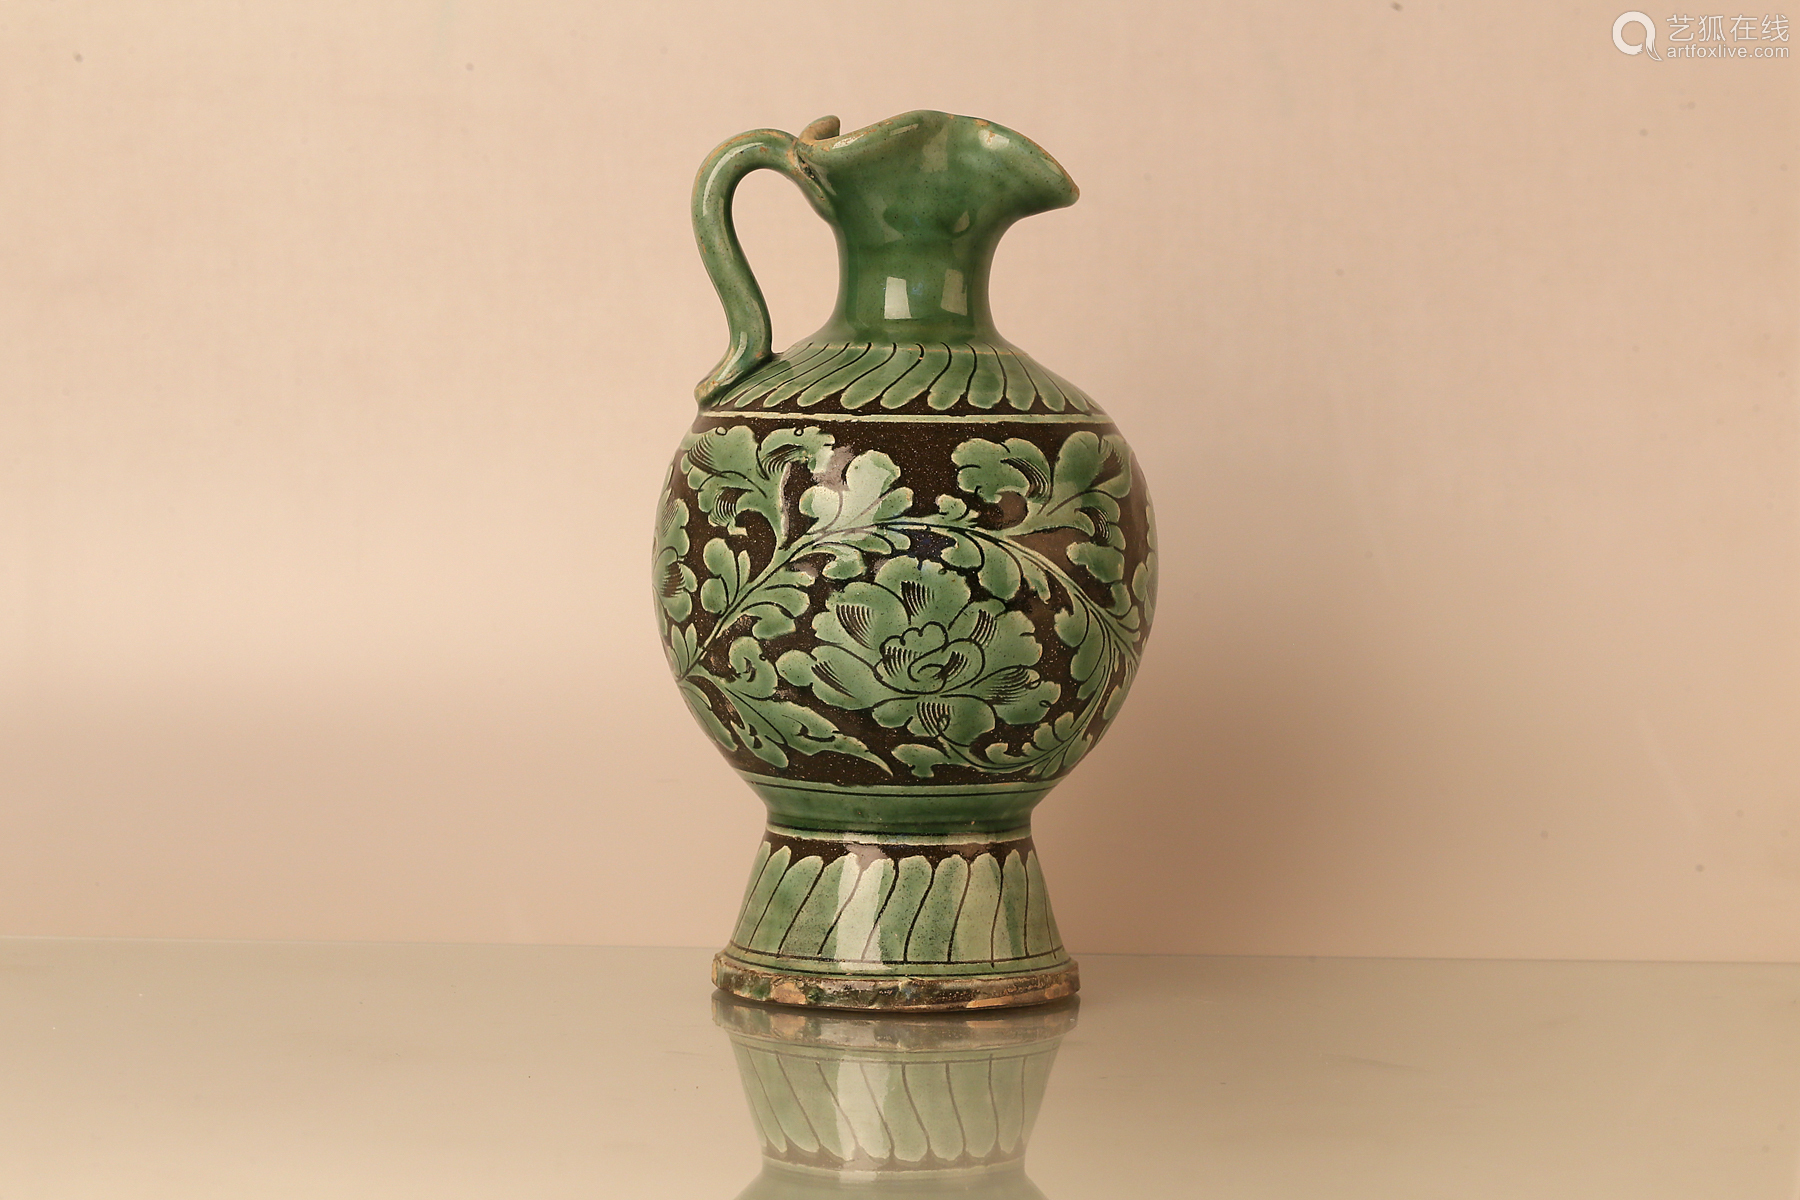 10-11TH CENTURY, A PEONY PATTERN FLOWER MOUTH VASE, NORTHERN SONG DYNASTY